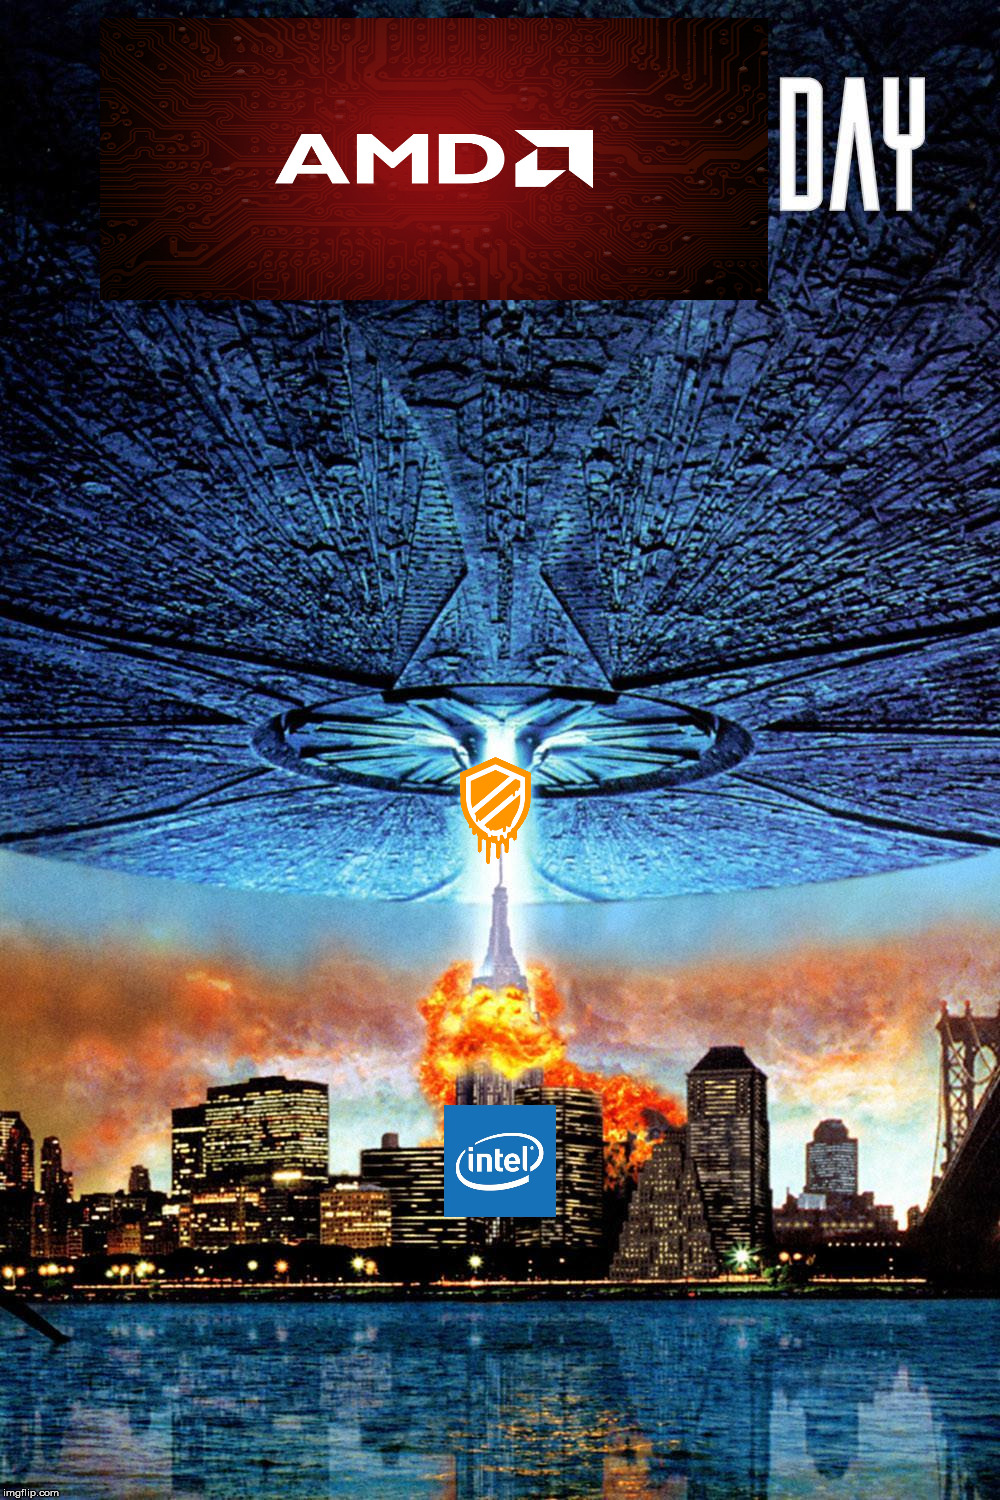 image tagged in intel,amd | made w/ Imgflip meme maker